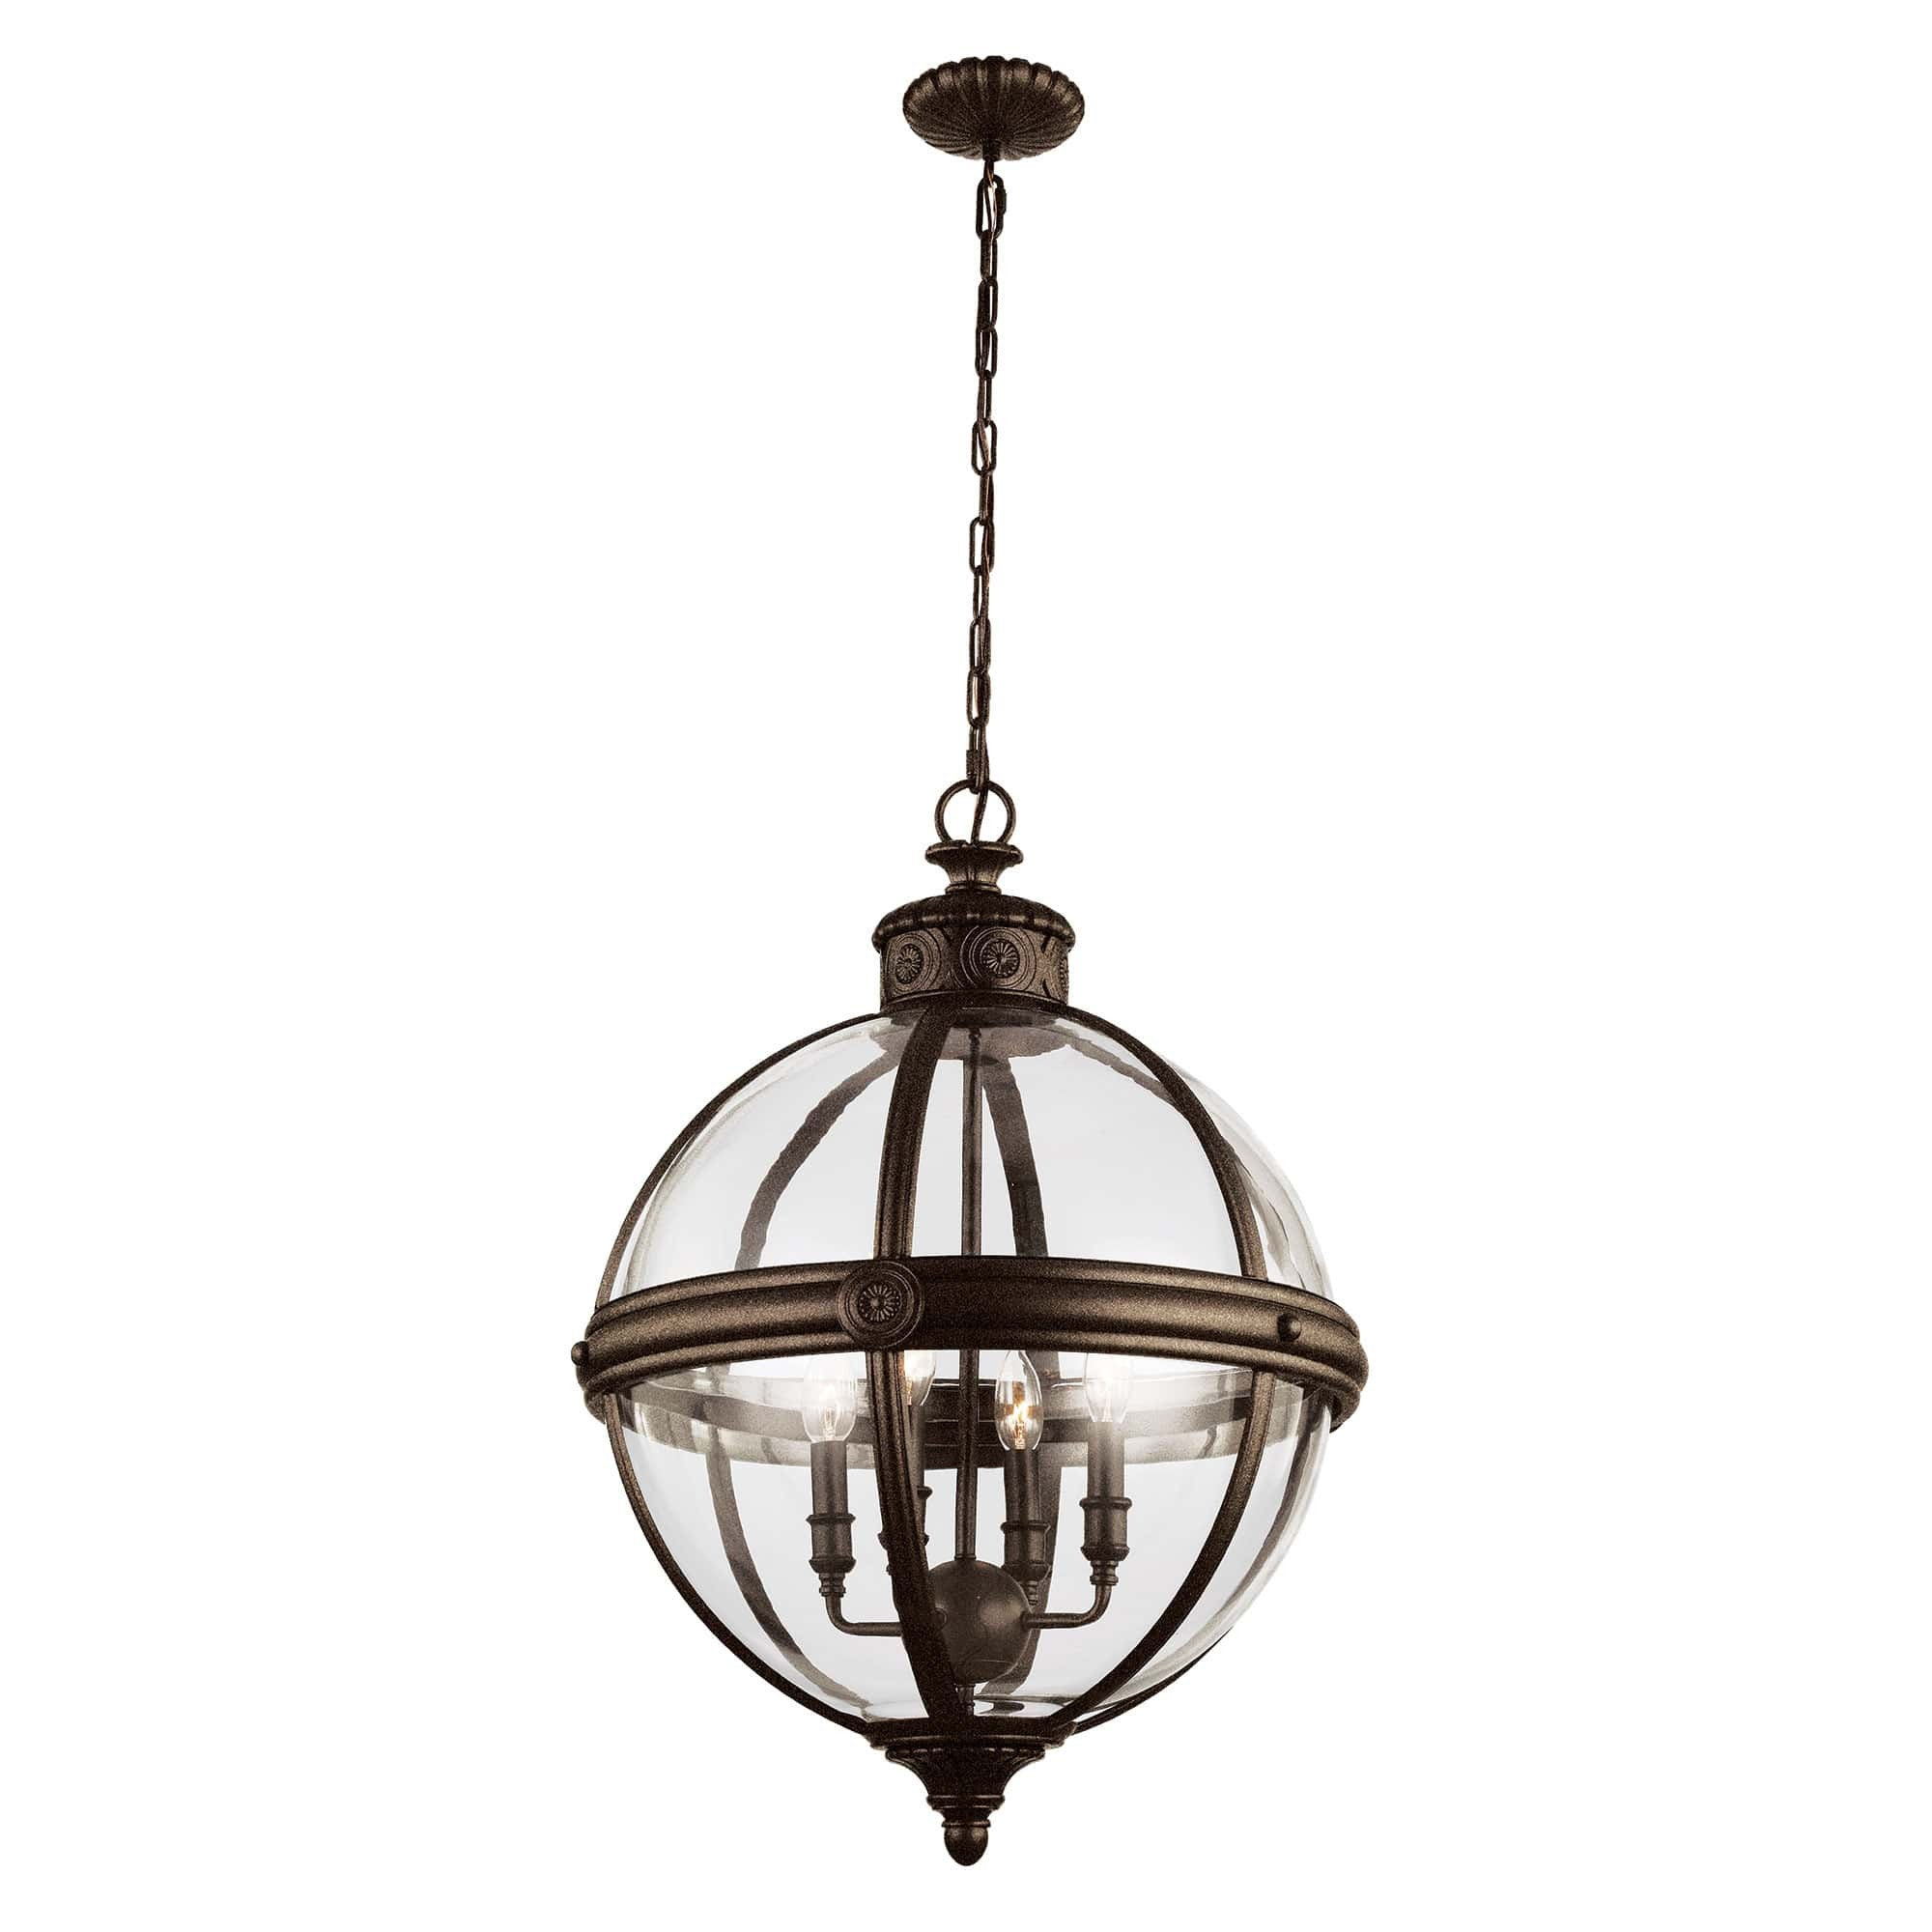 Feiss Adams 4 Light Bronze Glass Orb Candle Pendant